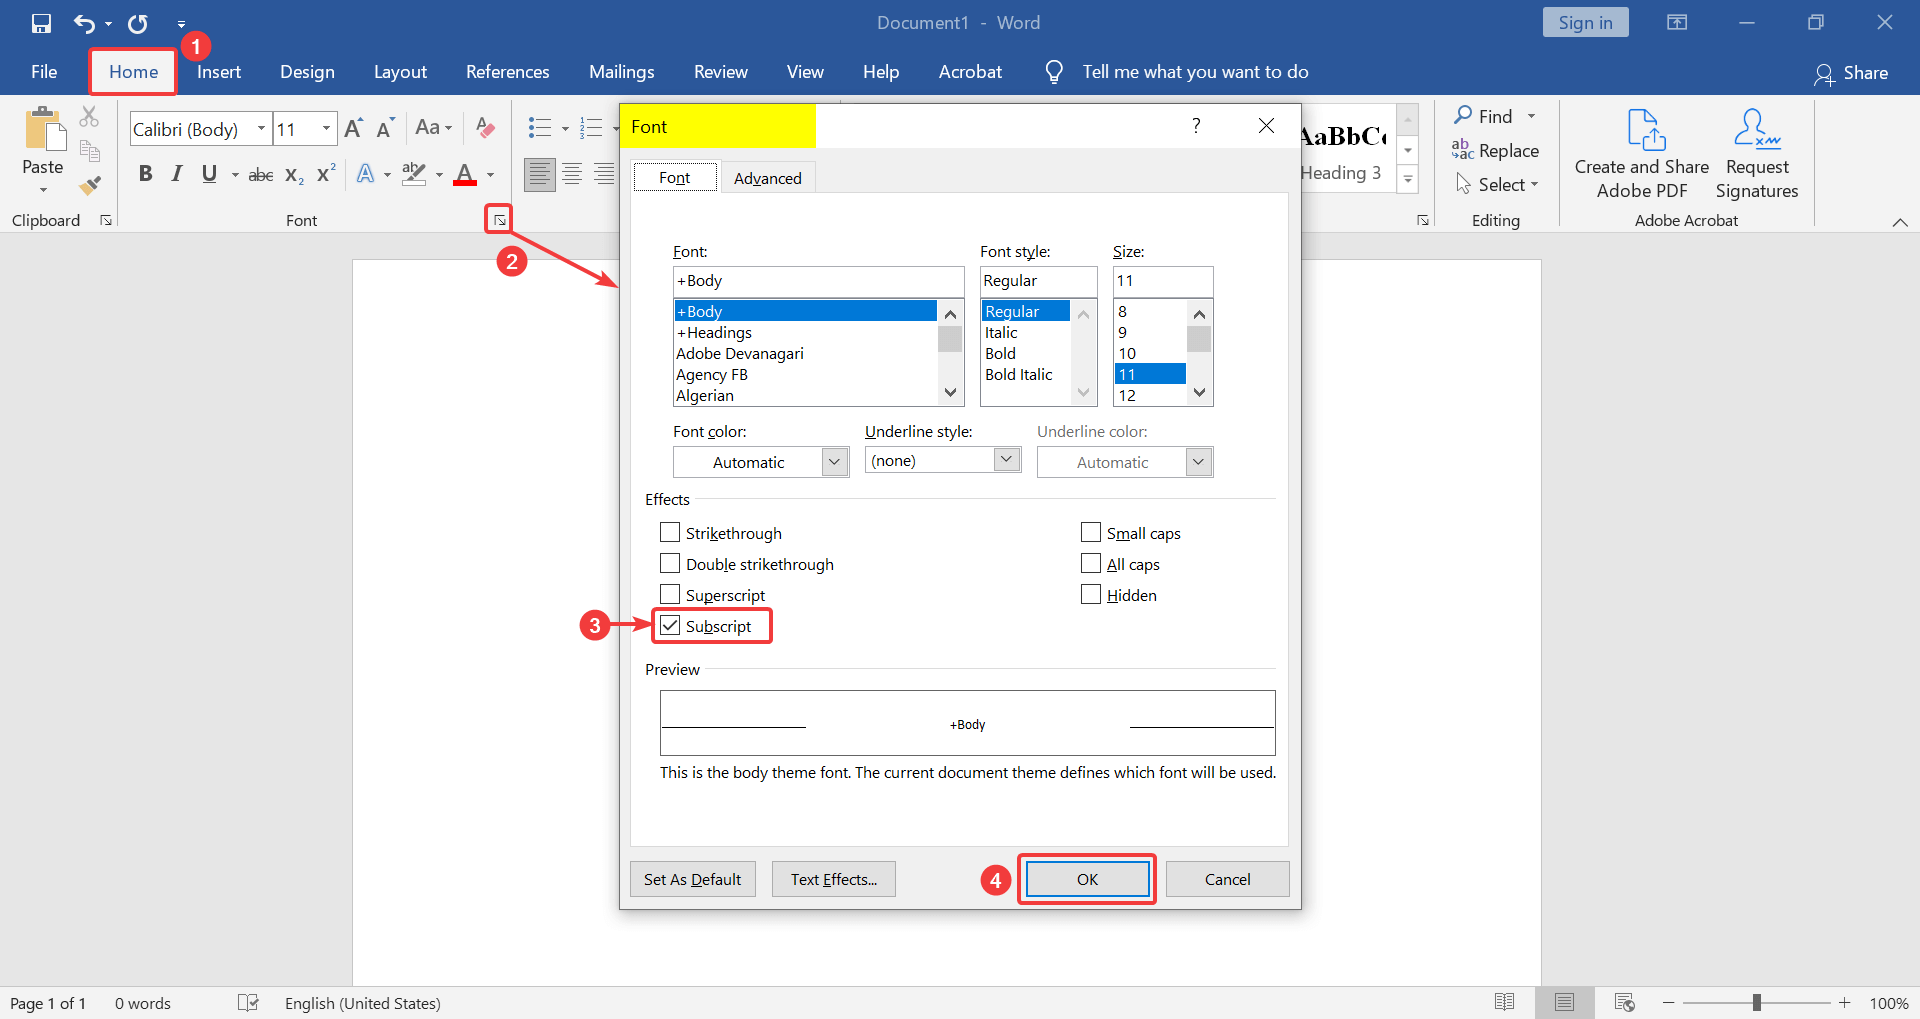 How to write a small number in Word